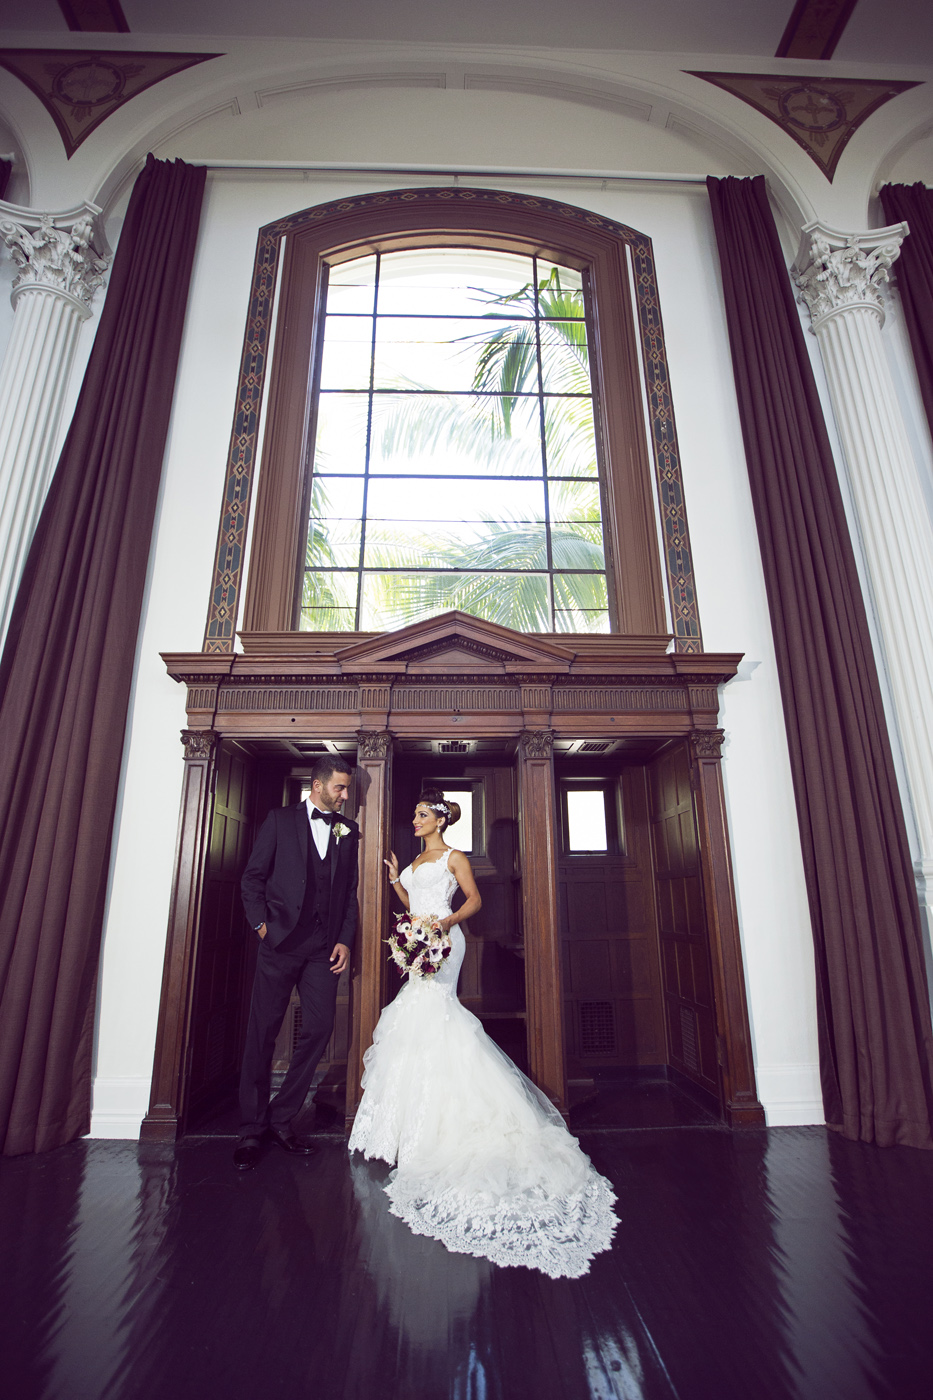 096DukePhotography_DukeImages_weddings_losangeles.jpg